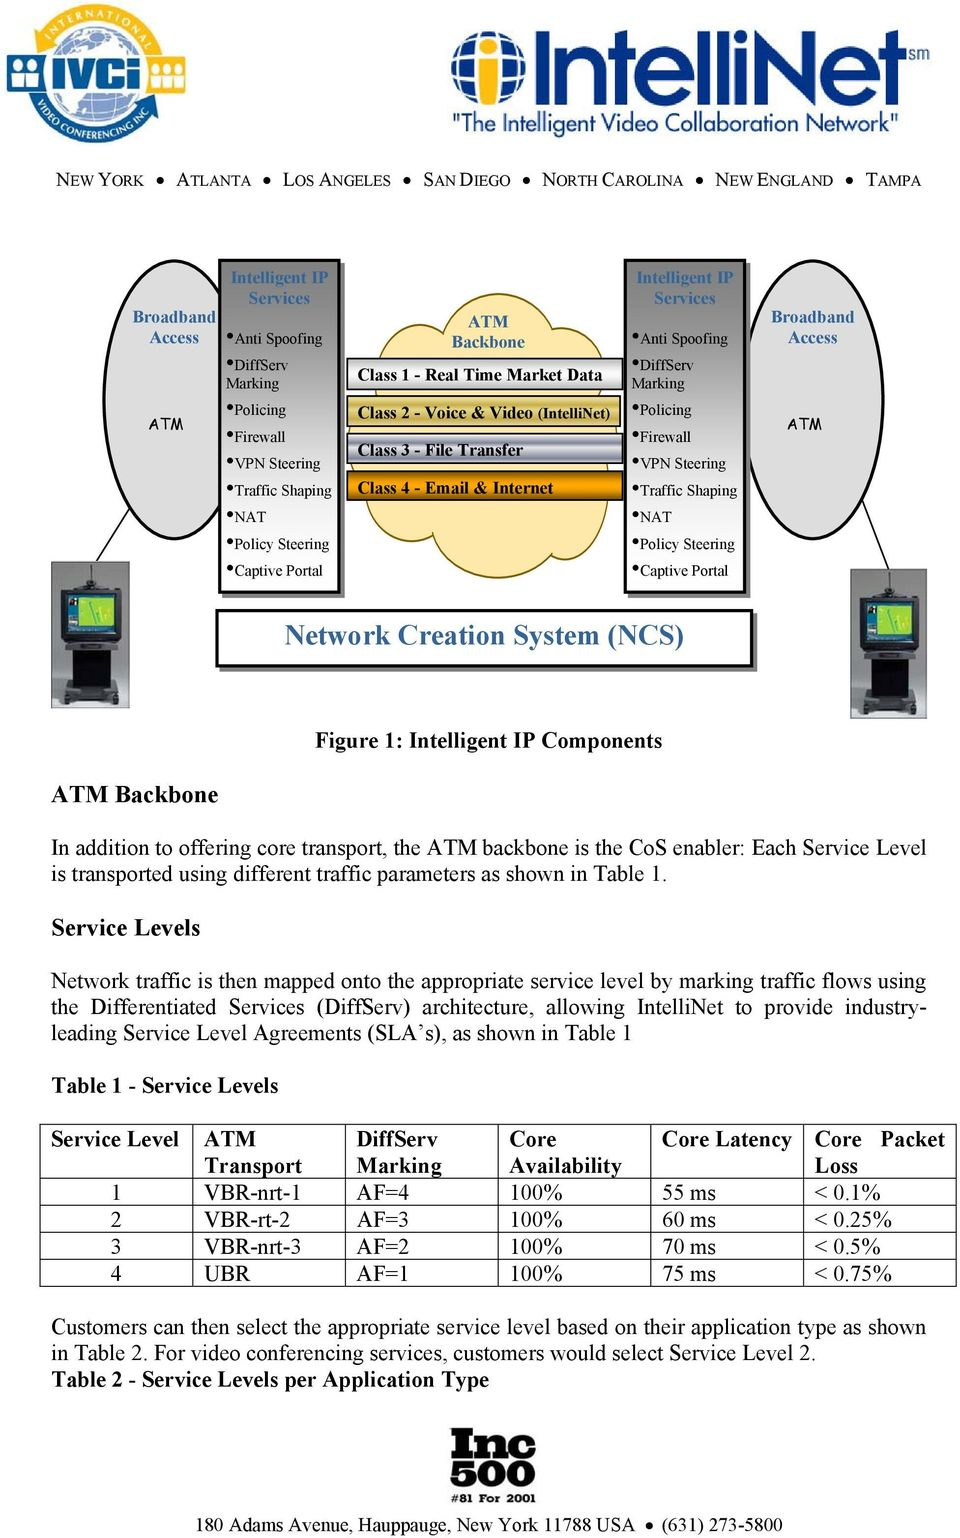 Policy Steering Policy Steering Captive Portal Captive Portal Network Creation System (NCS) Figure 1: Intelligent IP Components ATM Backbone In addition to offering core transport, the ATM backbone